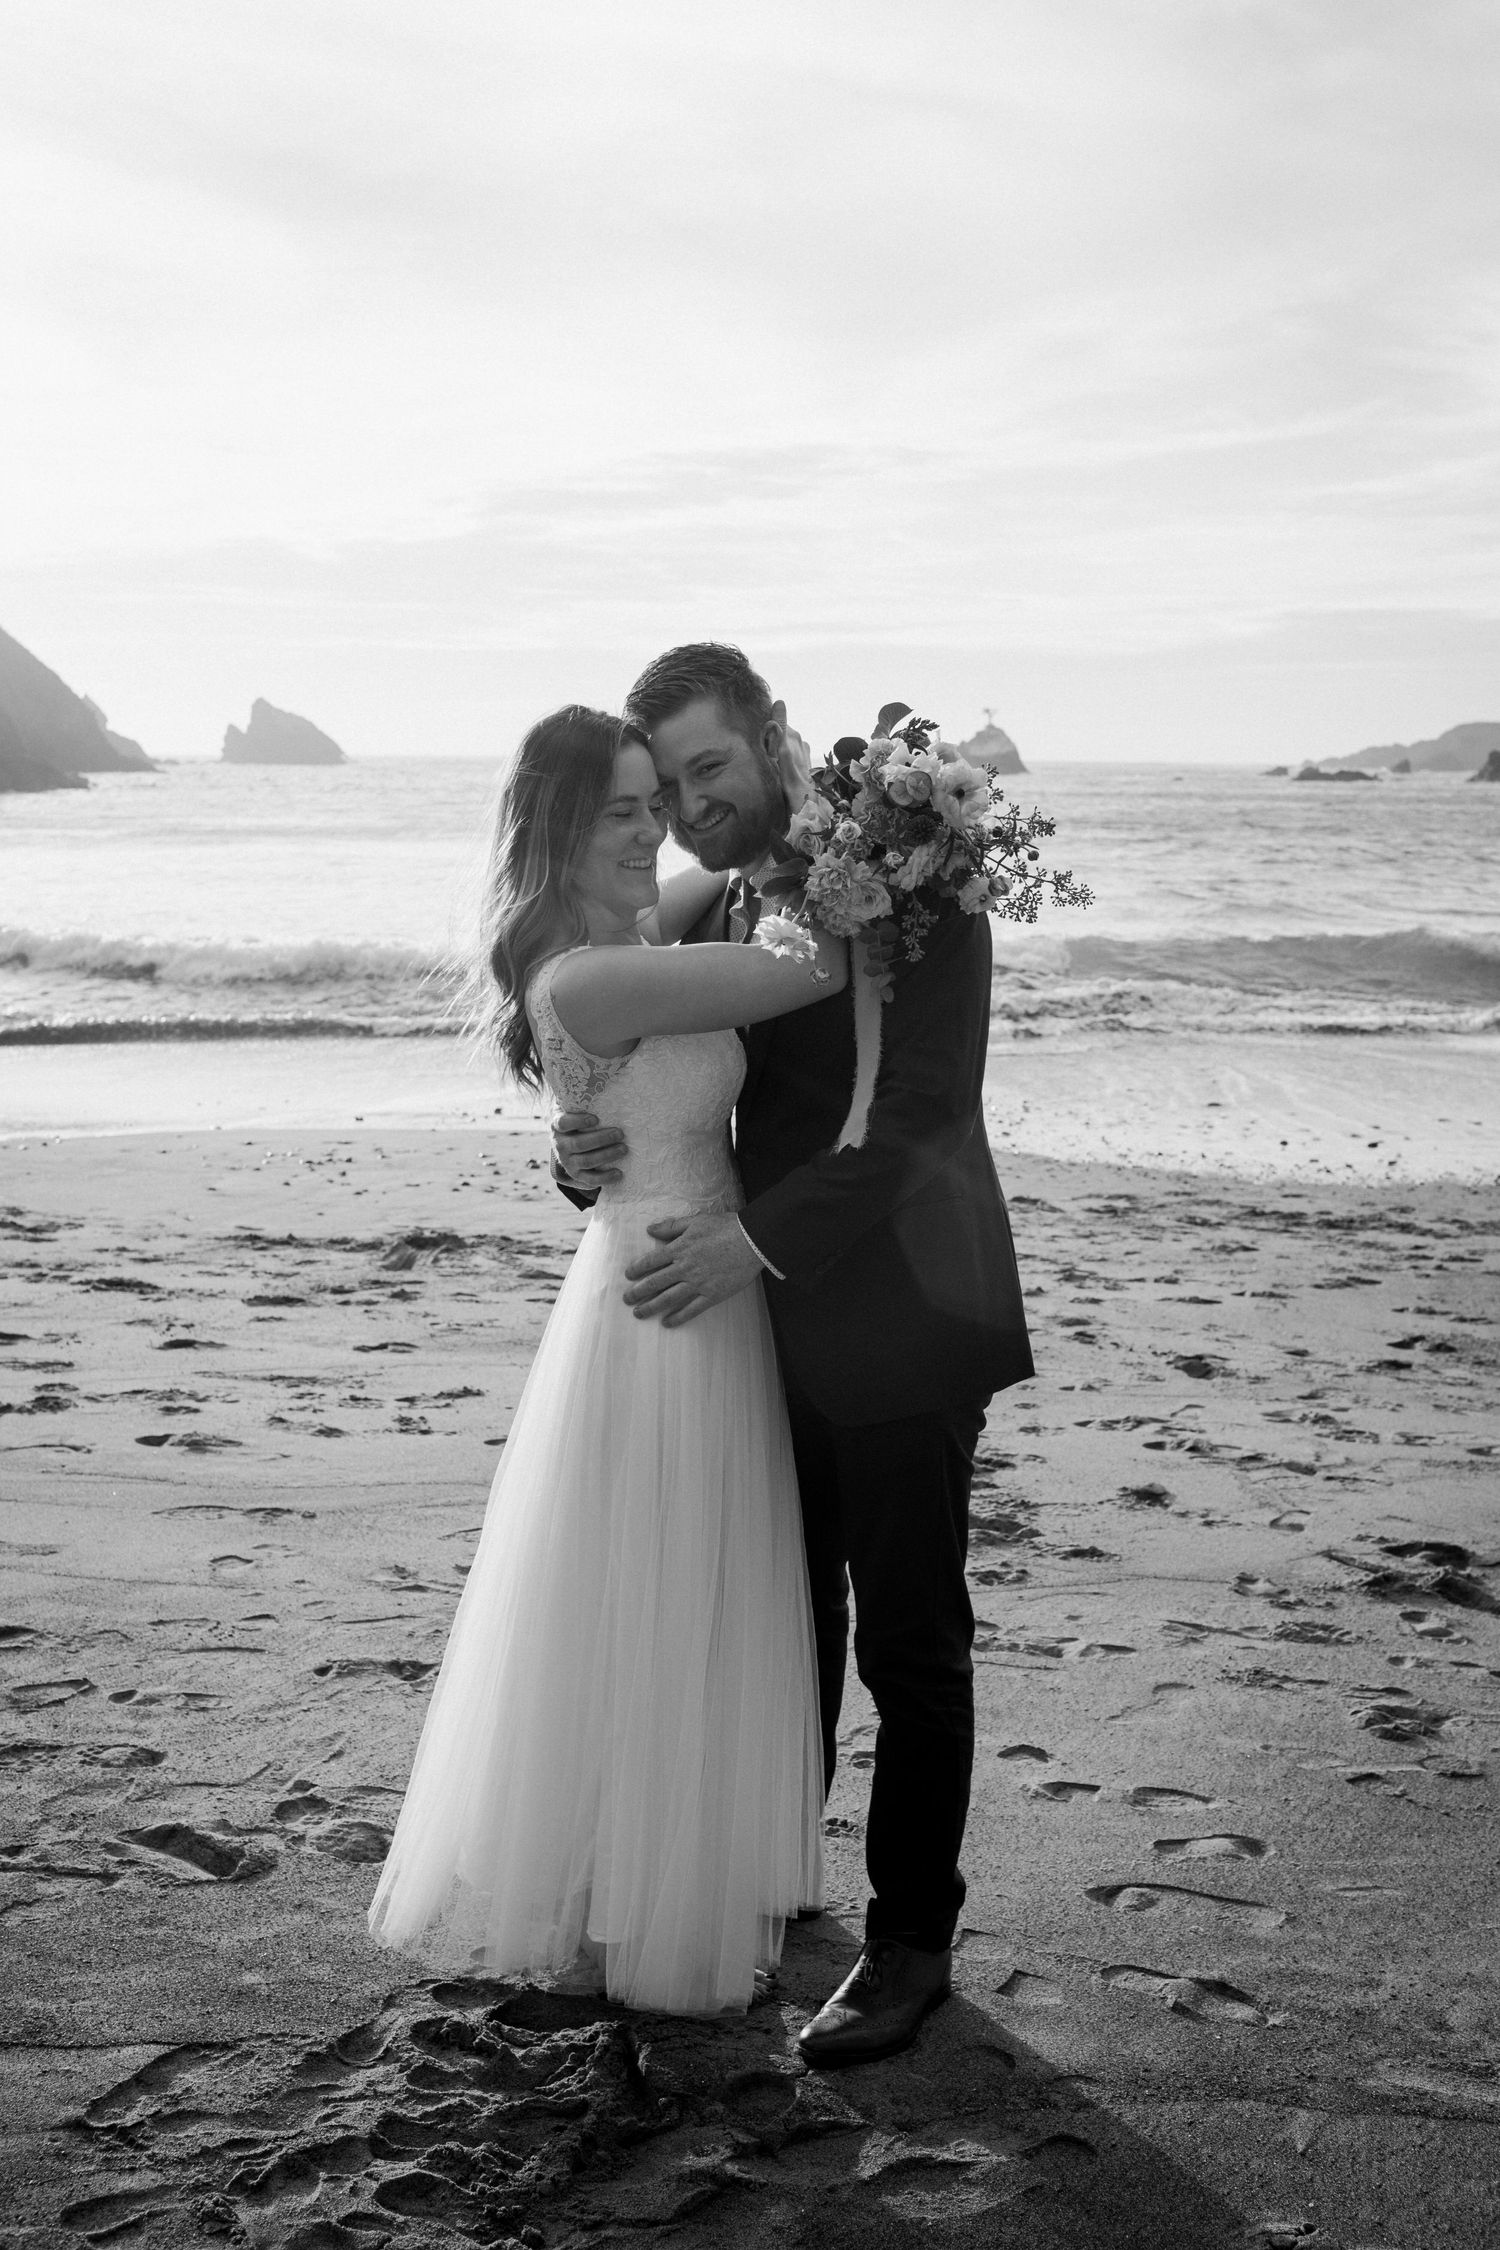 Black and white wedding elopemen photo from Mendocino, California.